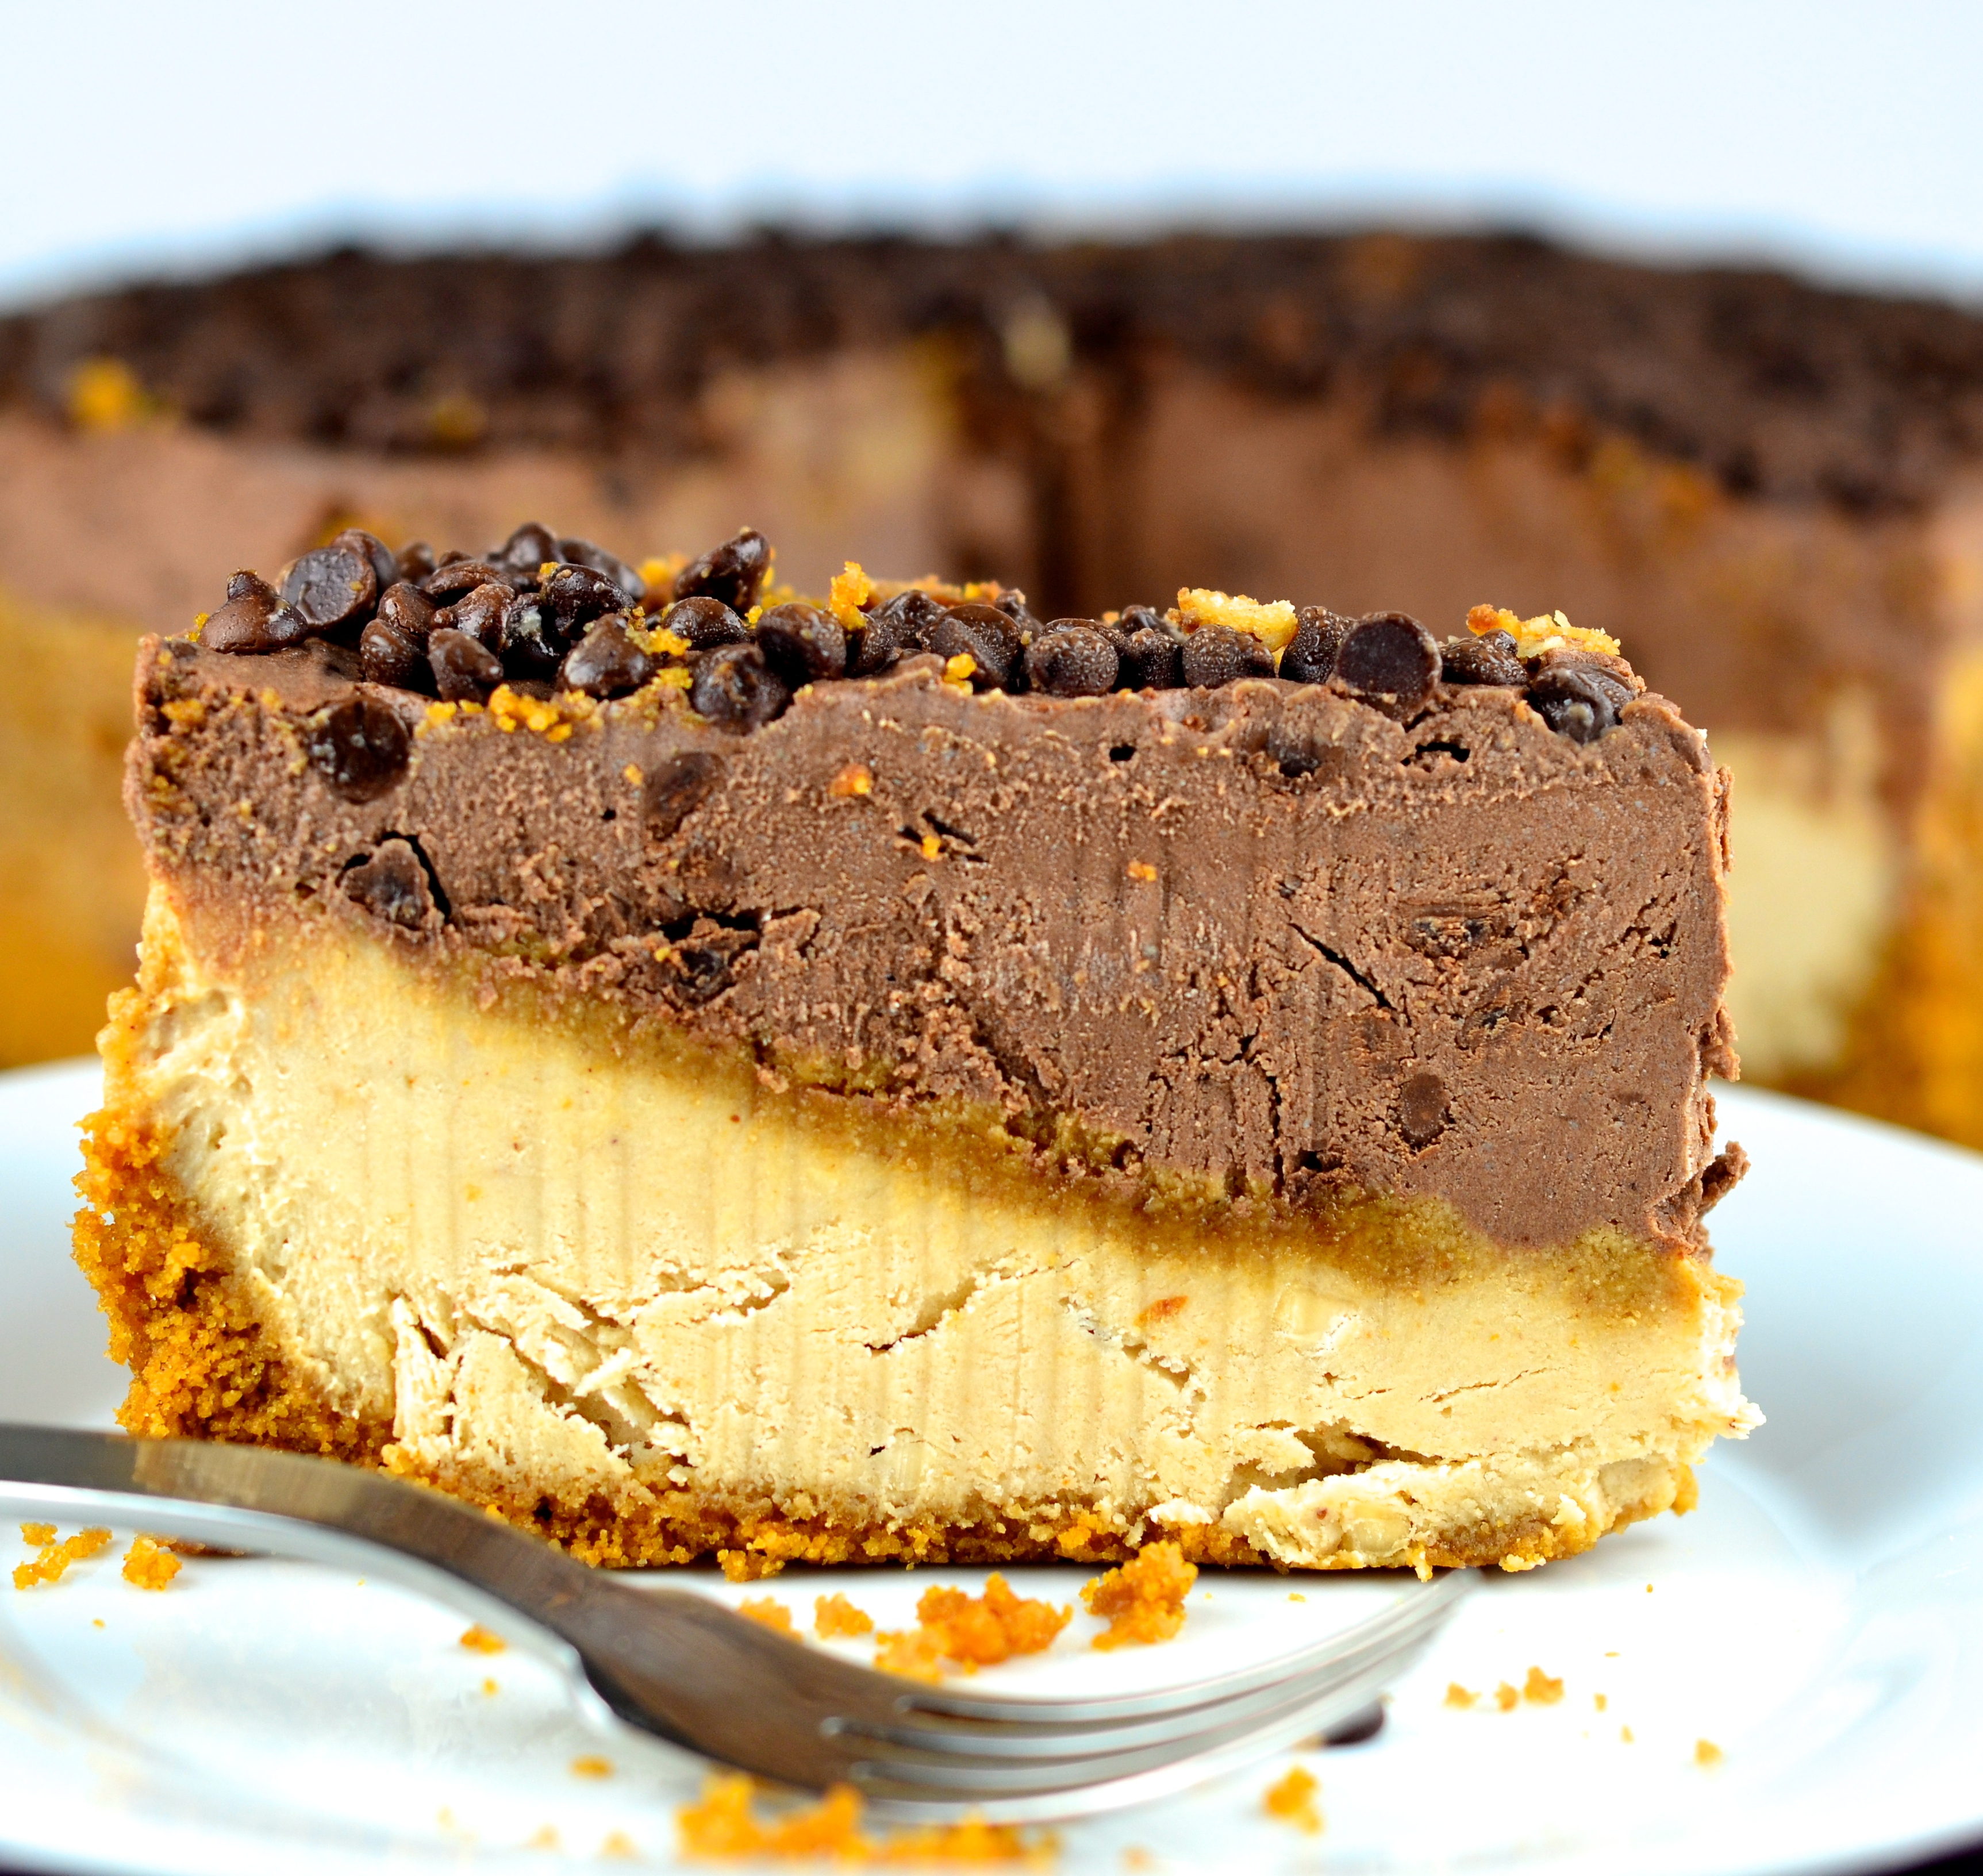 No-Bake Vegan Peanut Butter & Chocolate Cheesecake